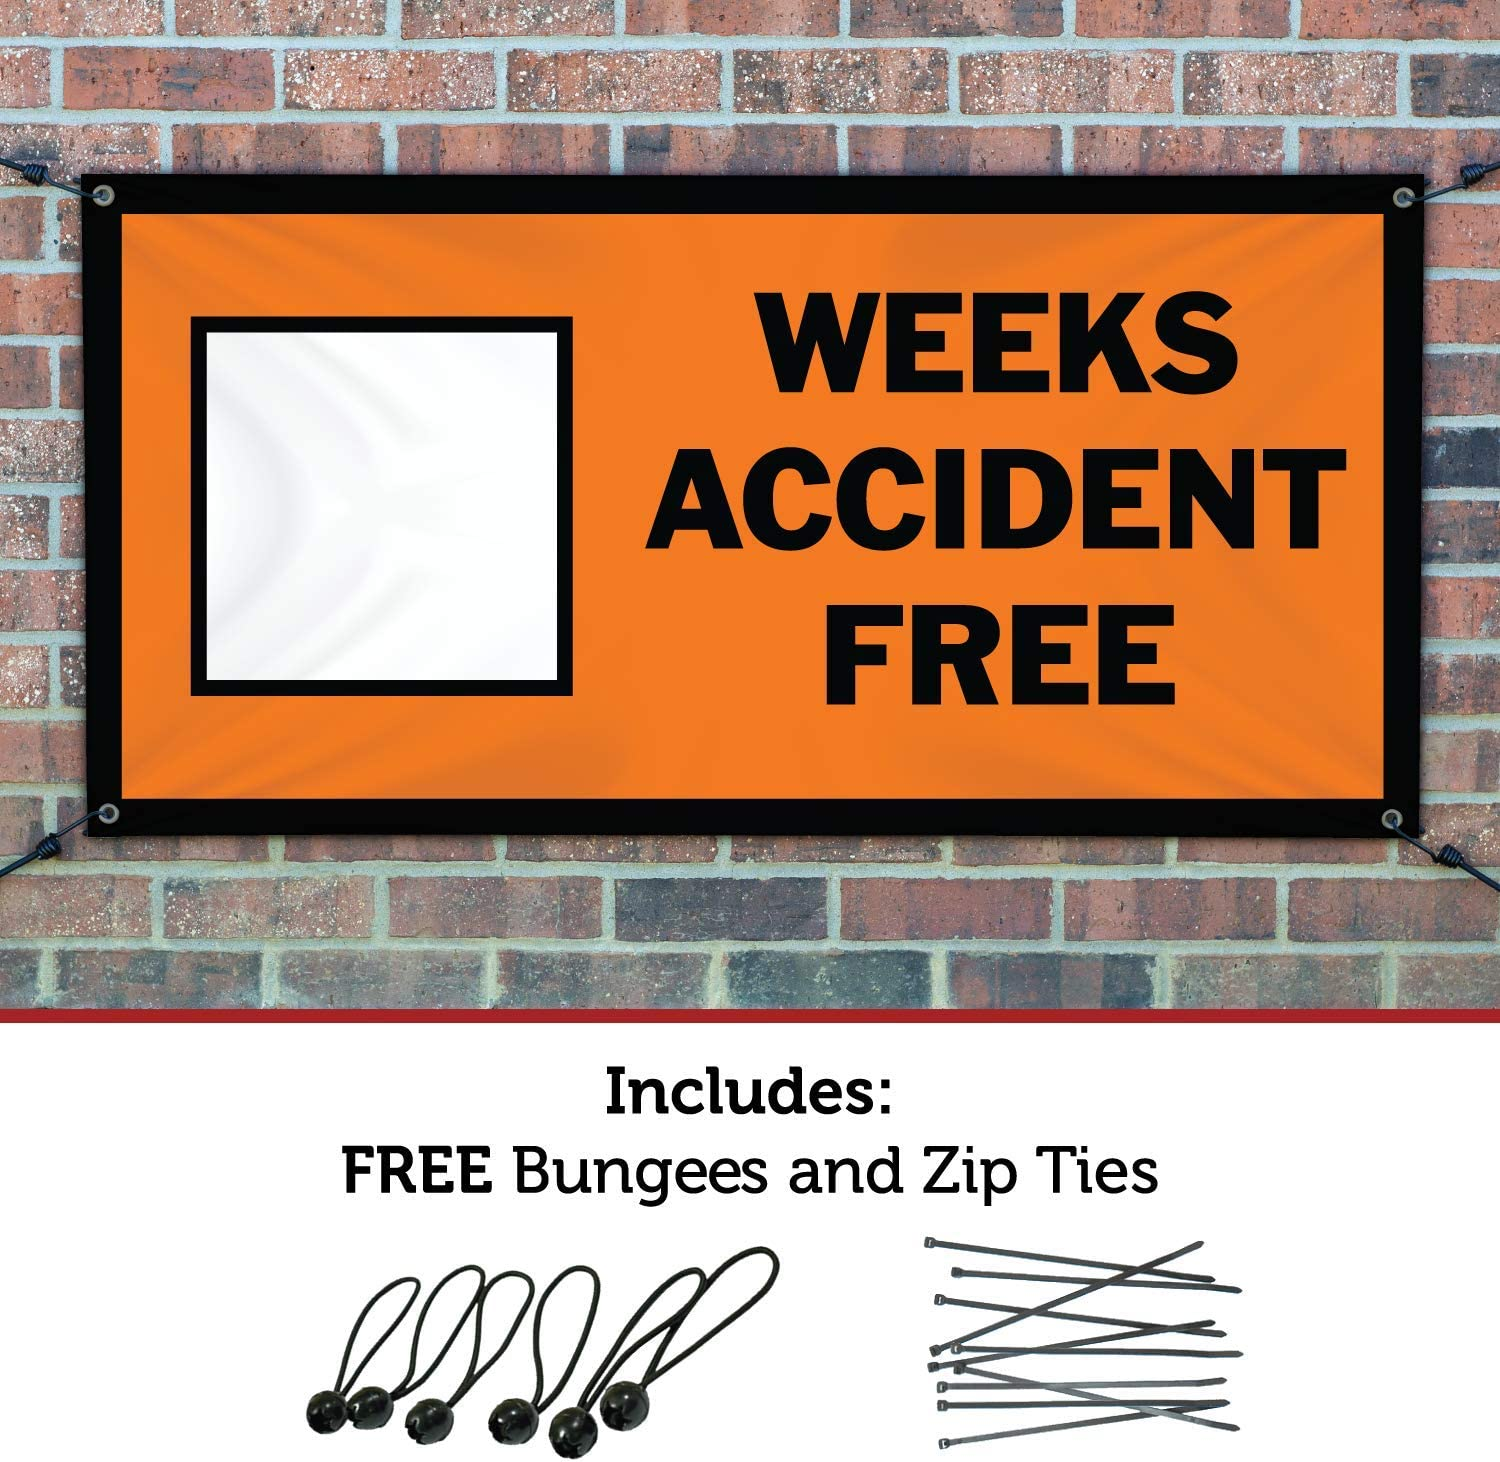 HALF PRICE BANNERS|Blank Weeks Accident Free Vinyl Banner-Indoor//Outdoor 4X12 Foot-Orange|Includes Ball Bungees /& Zip Ties|Easy Hang Sign-Made in USA